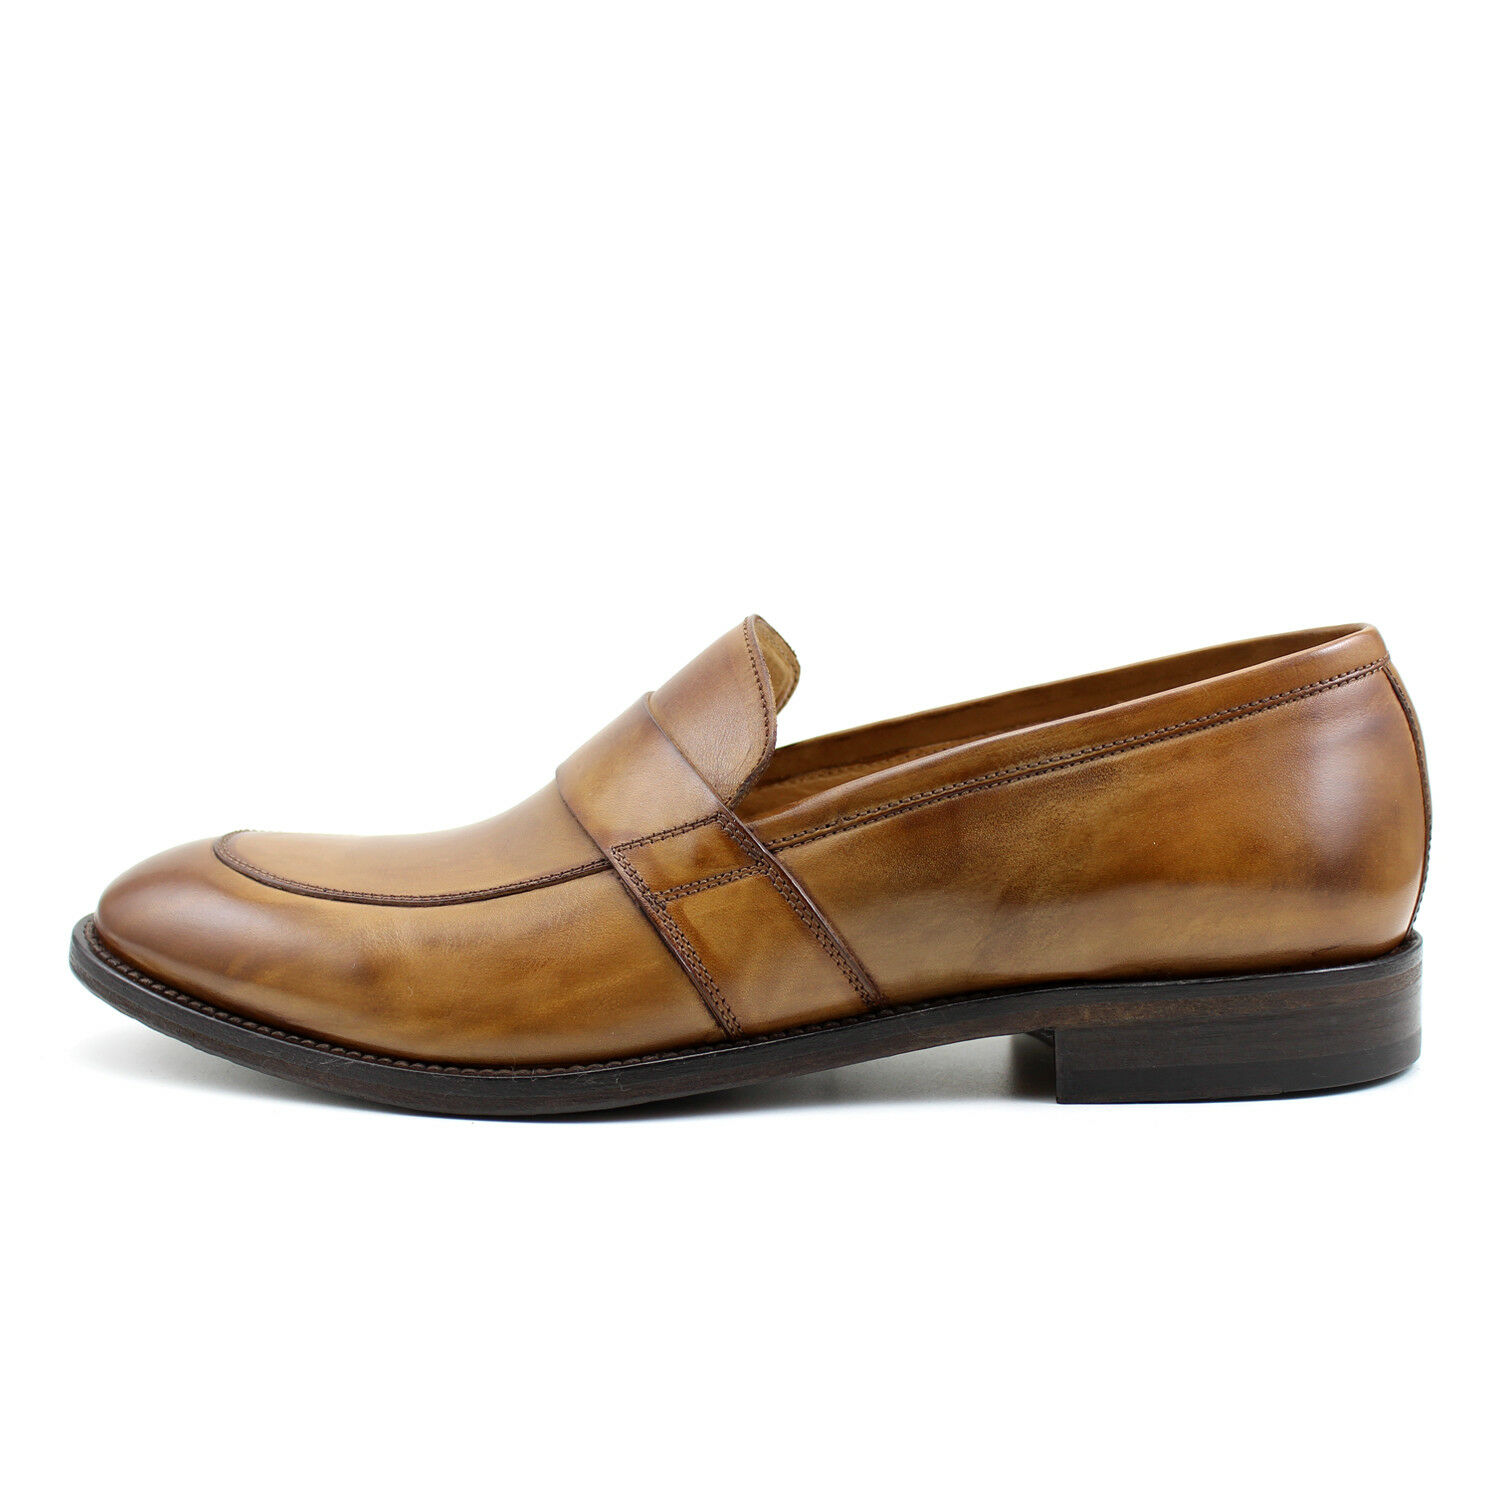 Men's mocassin brown leather shoes handmade Italian elegant GIORGIO REA 7587MA